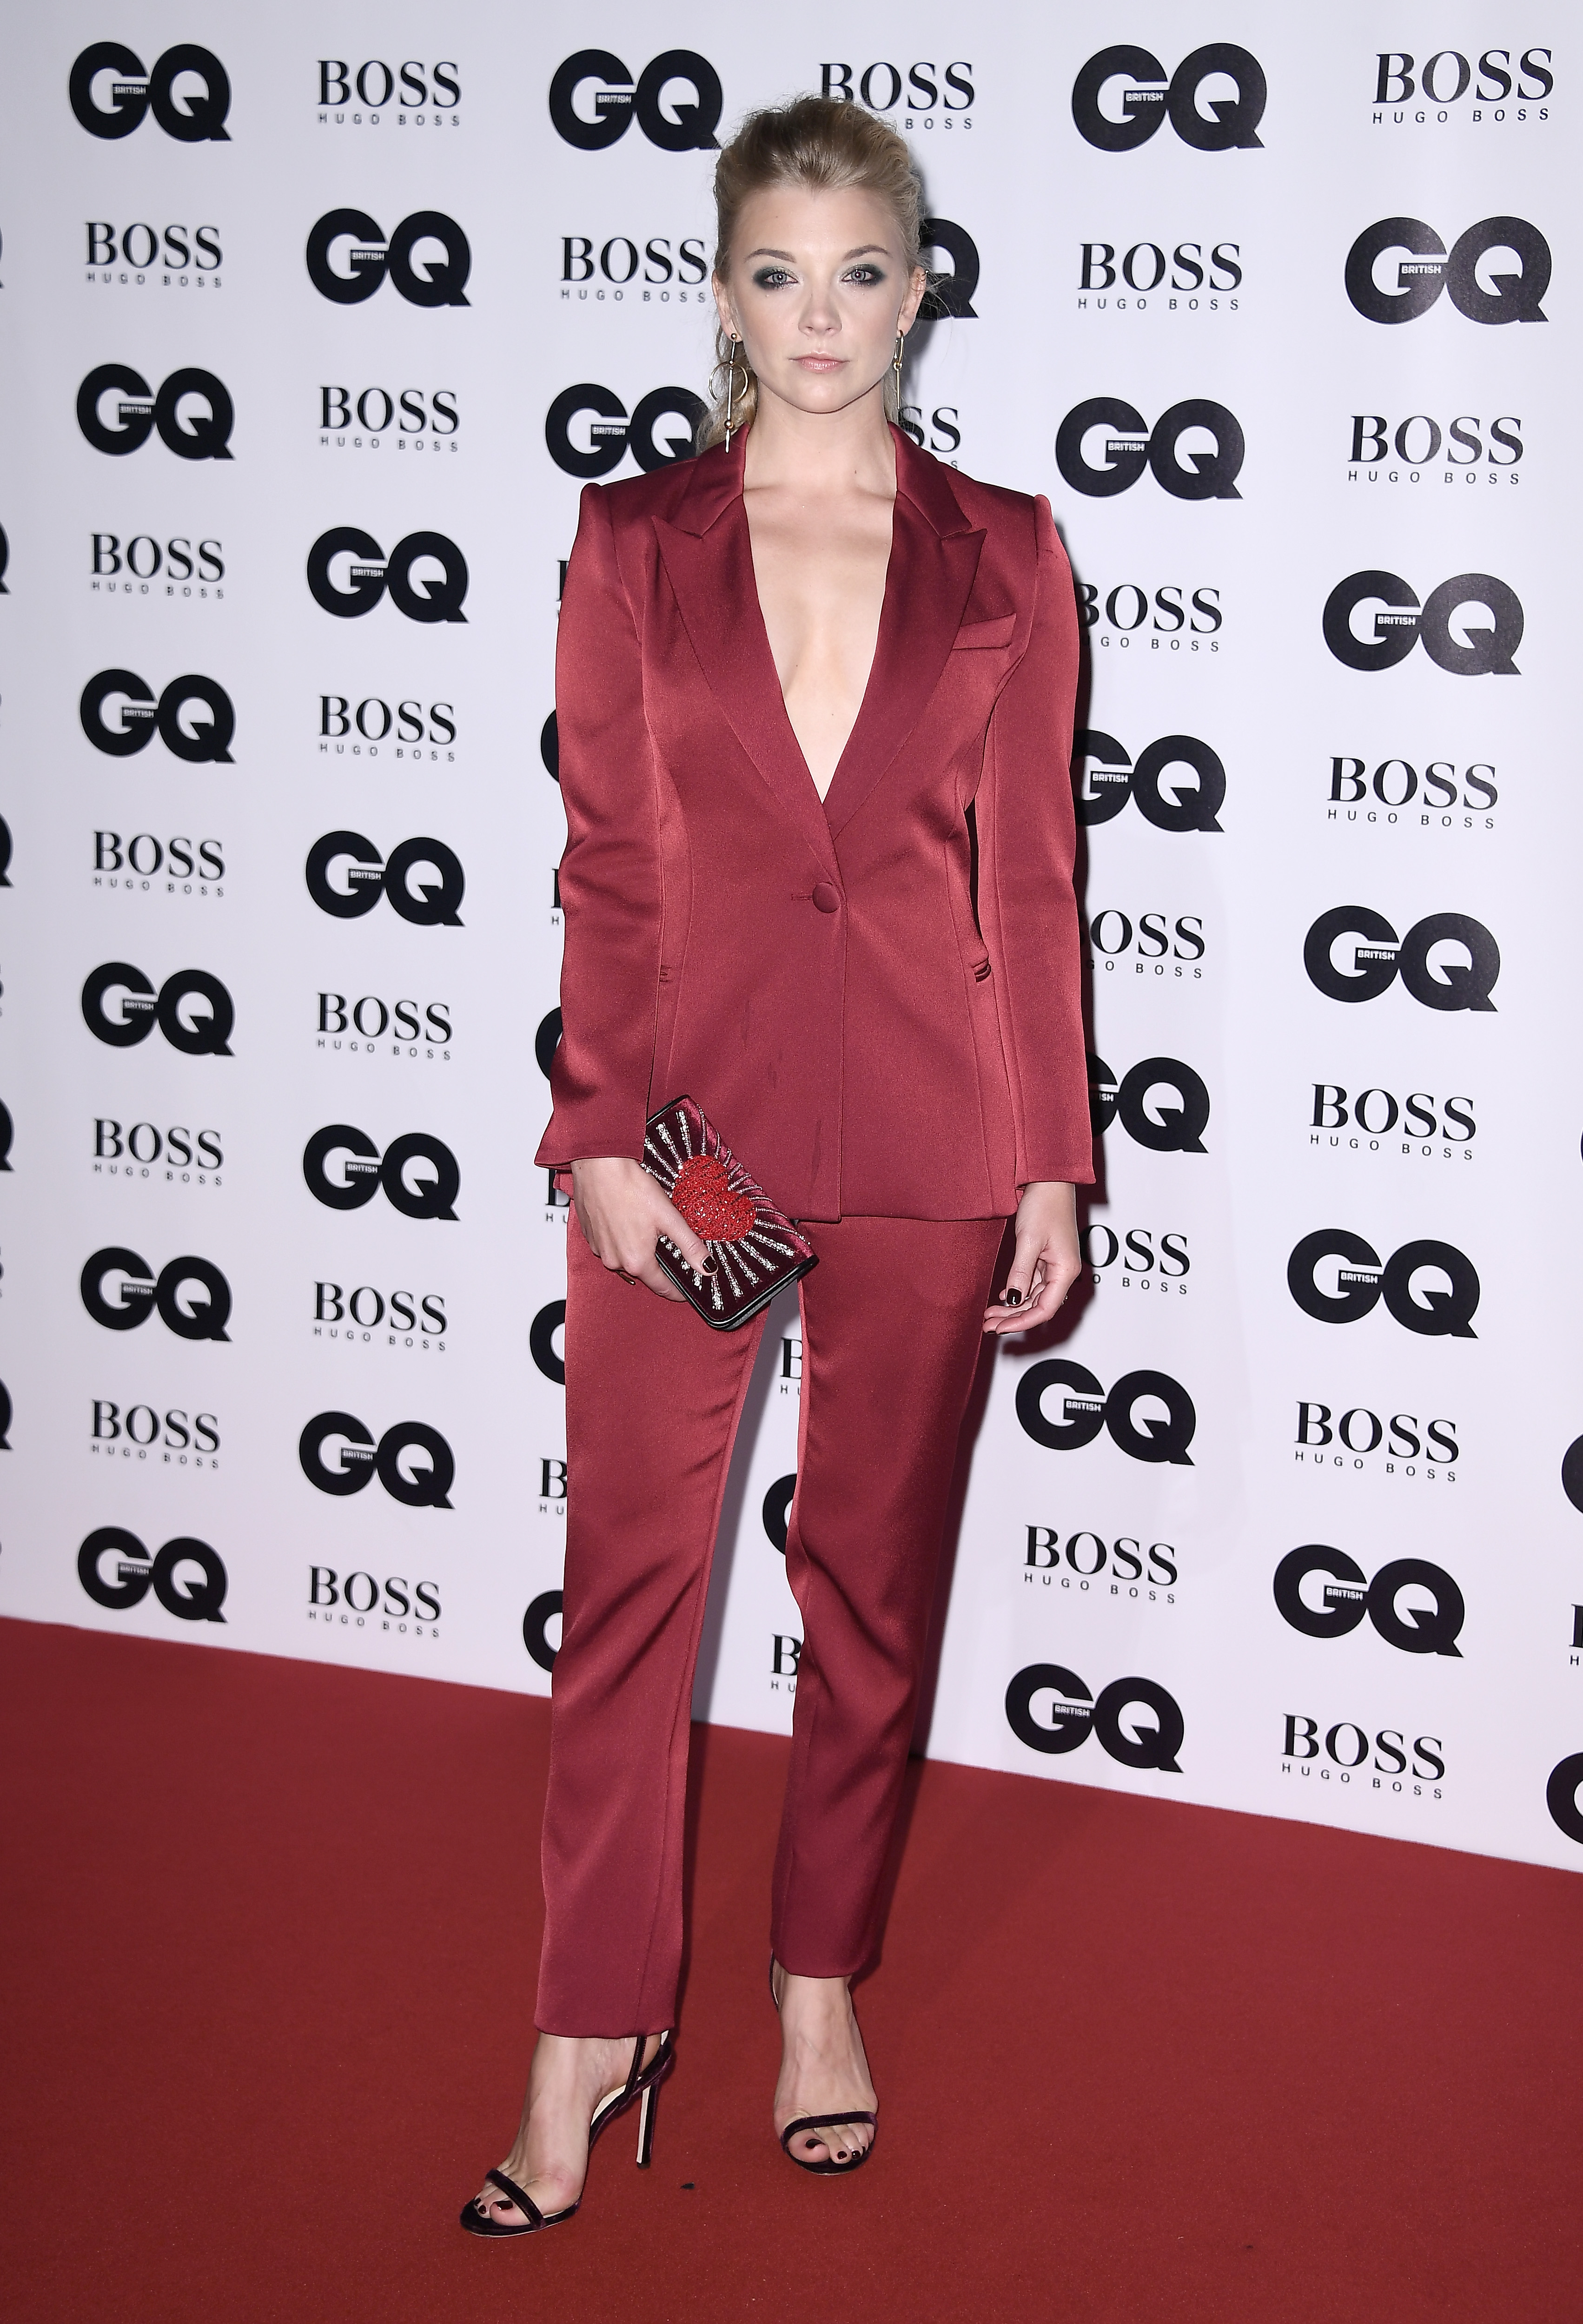 LONDON, ENGLAND - SEPTEMBER 05:  Natalie Dormer attends the GQ Men Of The Year Awards at the Tate Modern on September 5, 2017 in London, England.  (Photo by Gareth Cattermole/Getty Images)